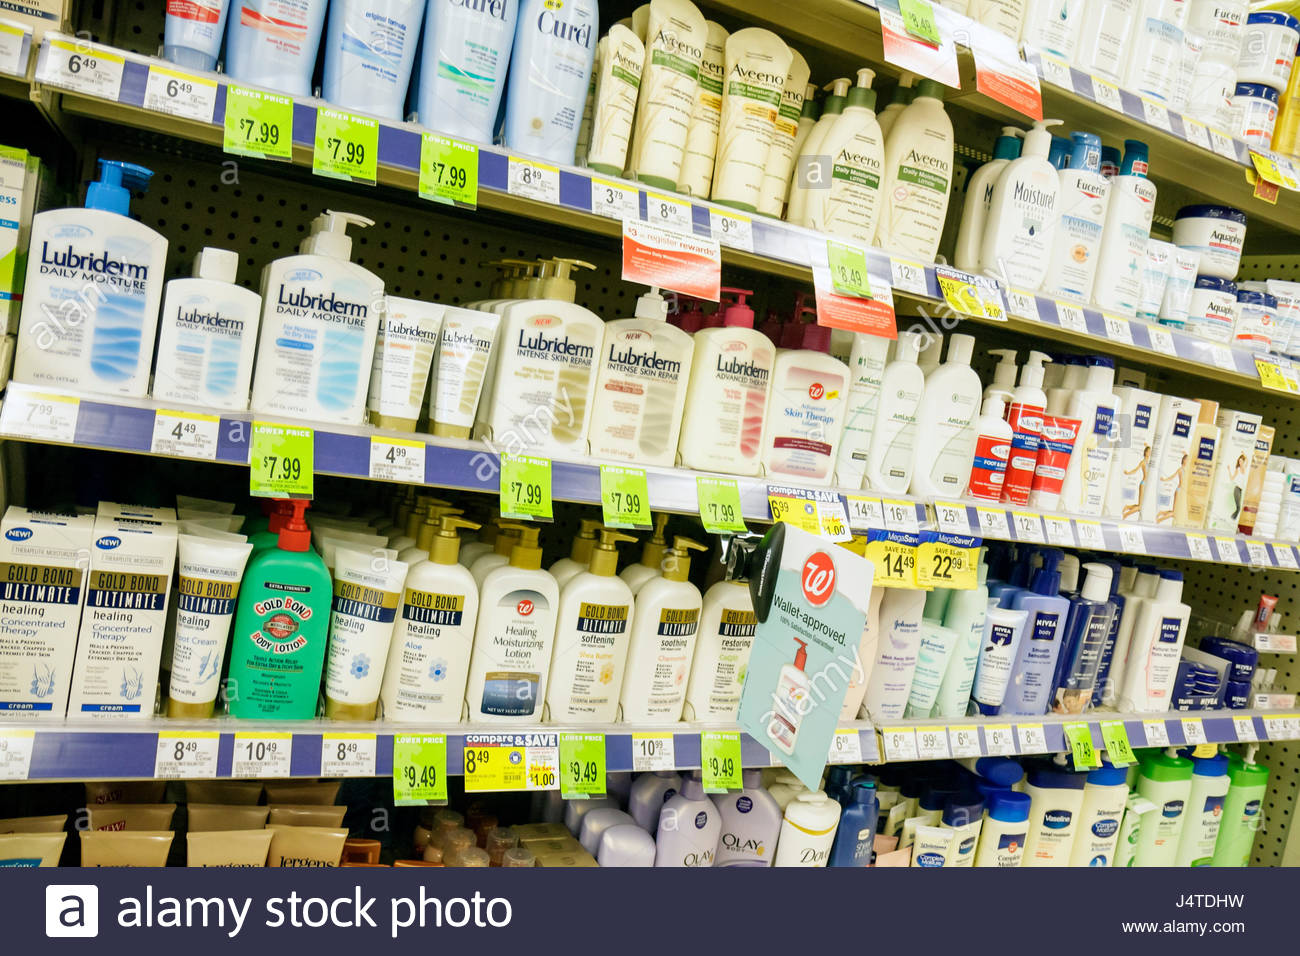 Miami Beach Florida Walgreens drug store pharmacy chain business product display skincare moisturizer moisture Lubriderm - Stock Image